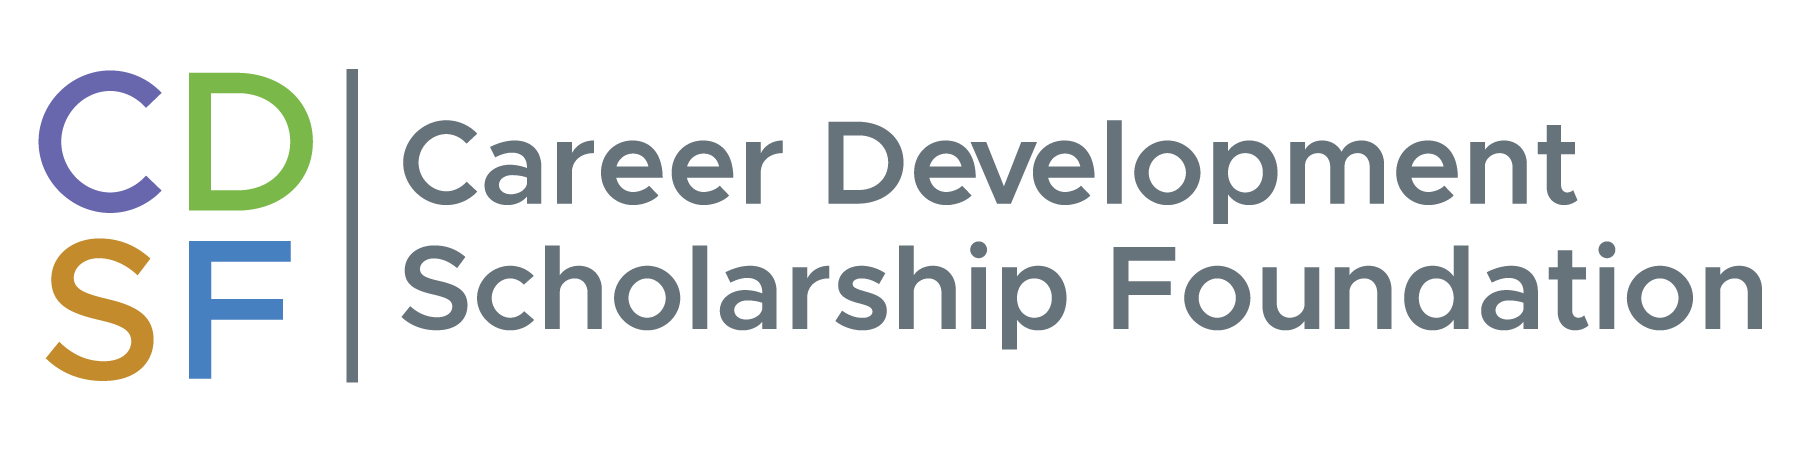 CAREER DEVELOPMENT SCHOLARSHIP FOUNDATION